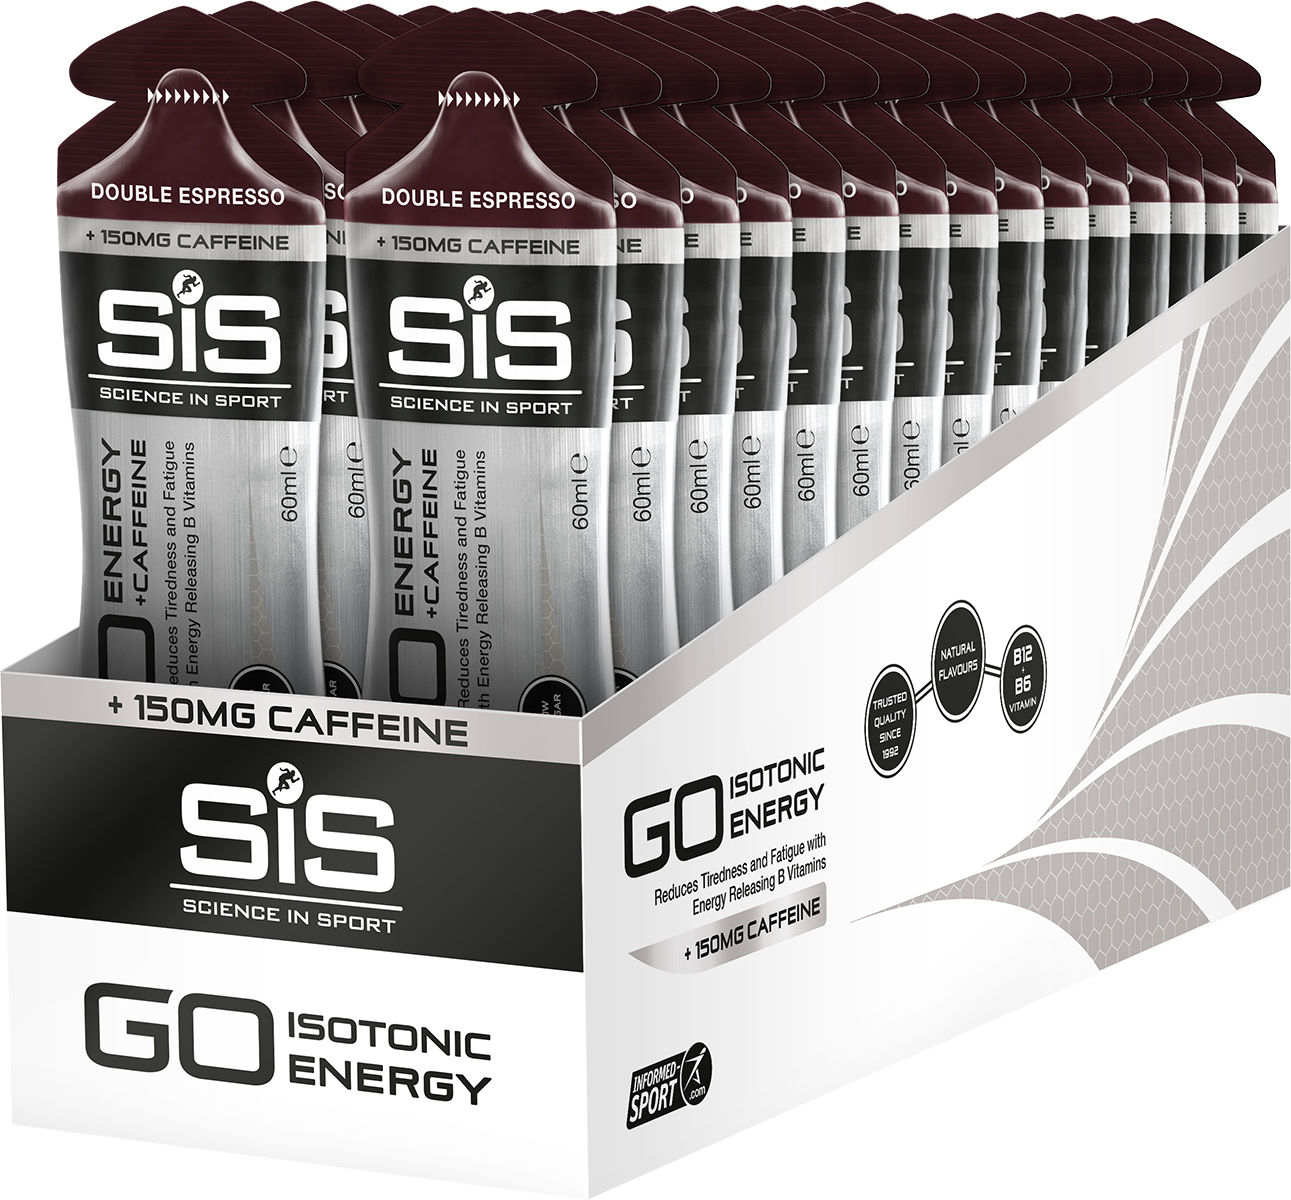 6 pack Science In Sport Gel multipack Double Espresso with 150 mg caffeine